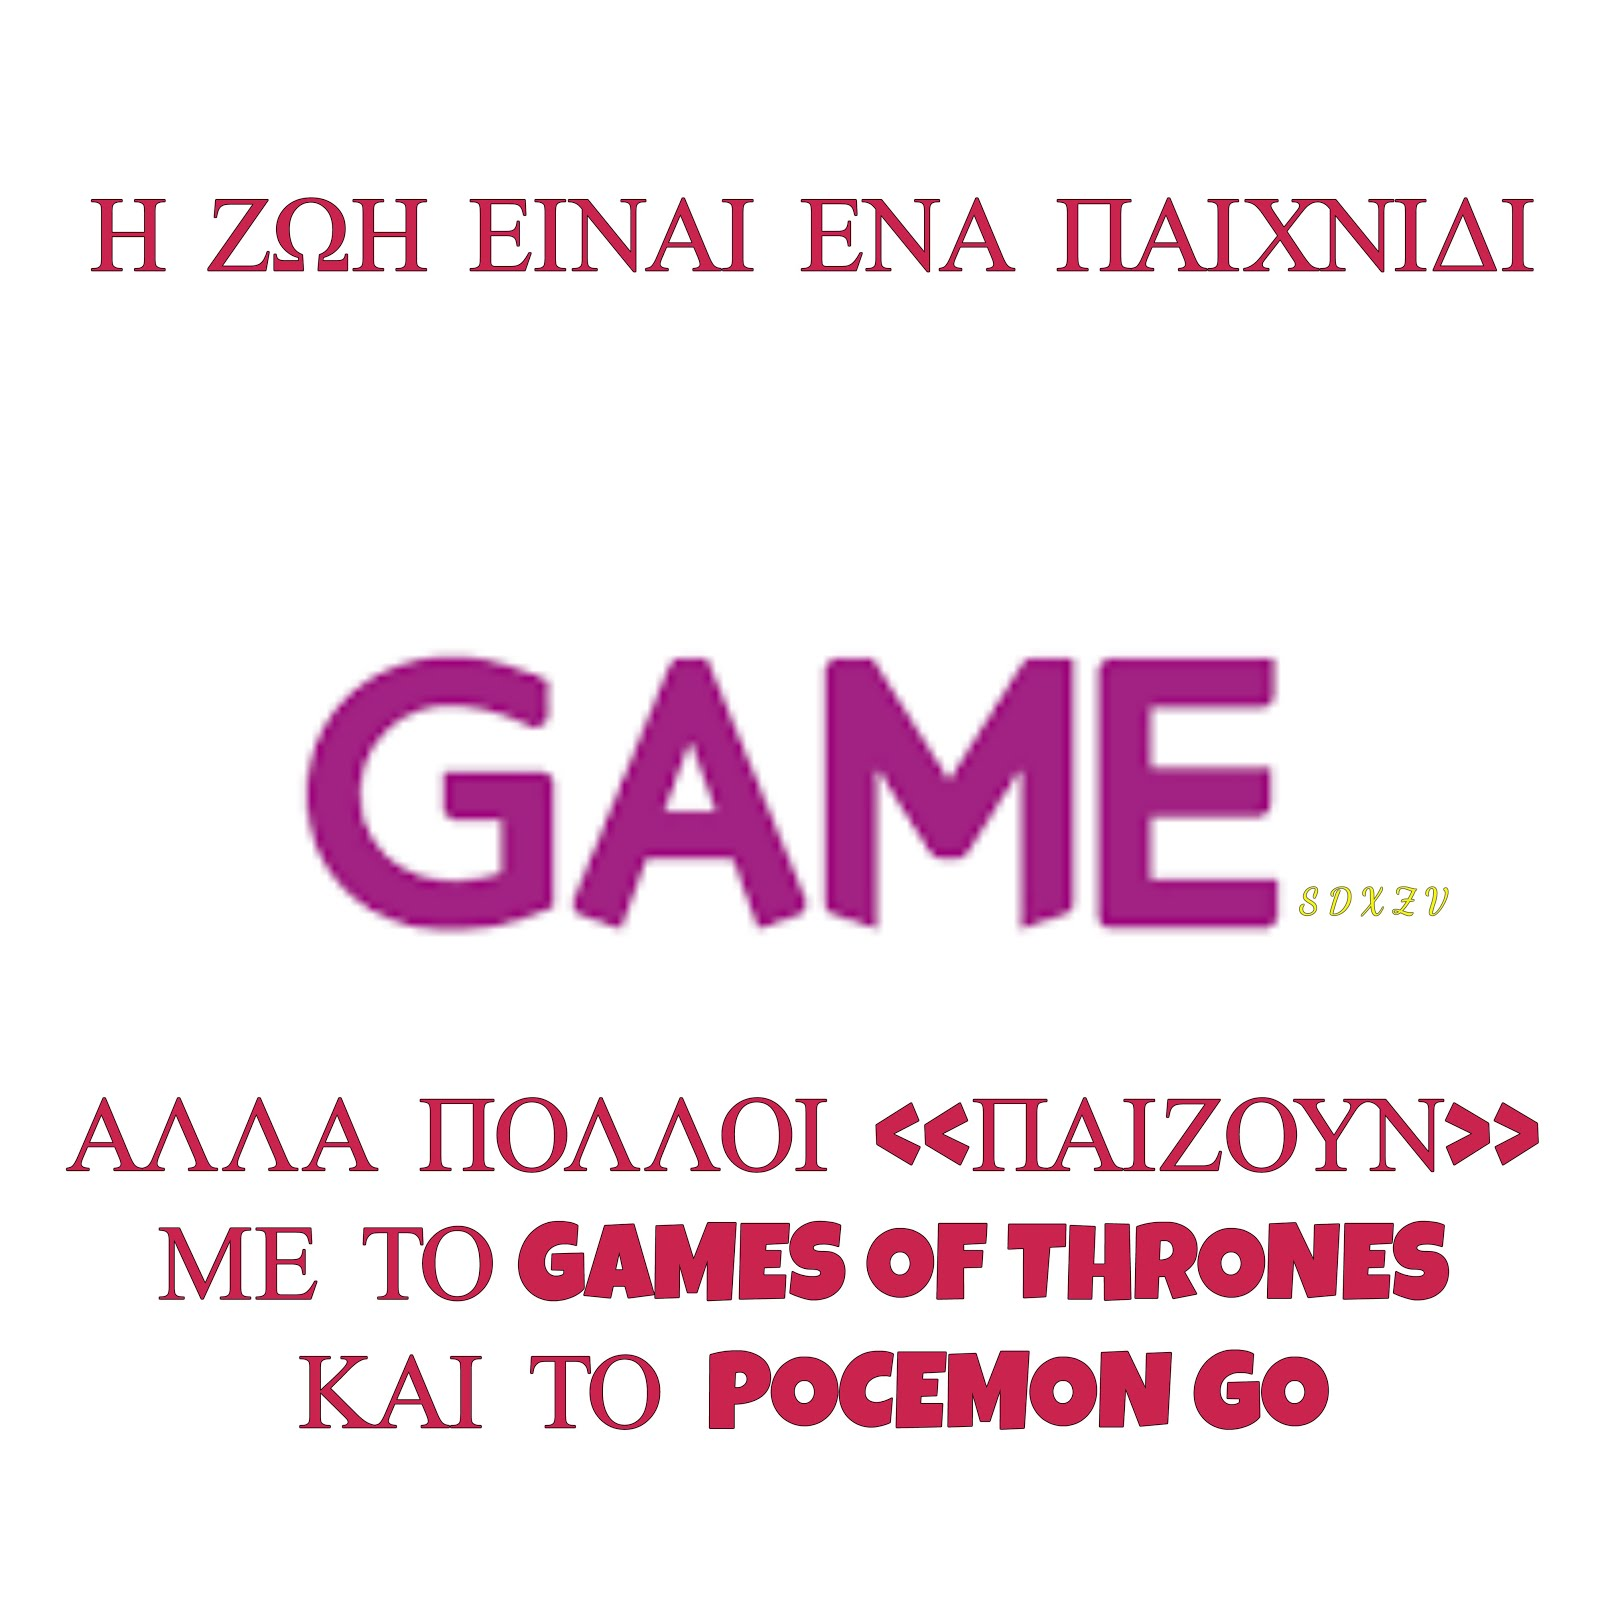 GAMES OF THRONES-POCEMON GO